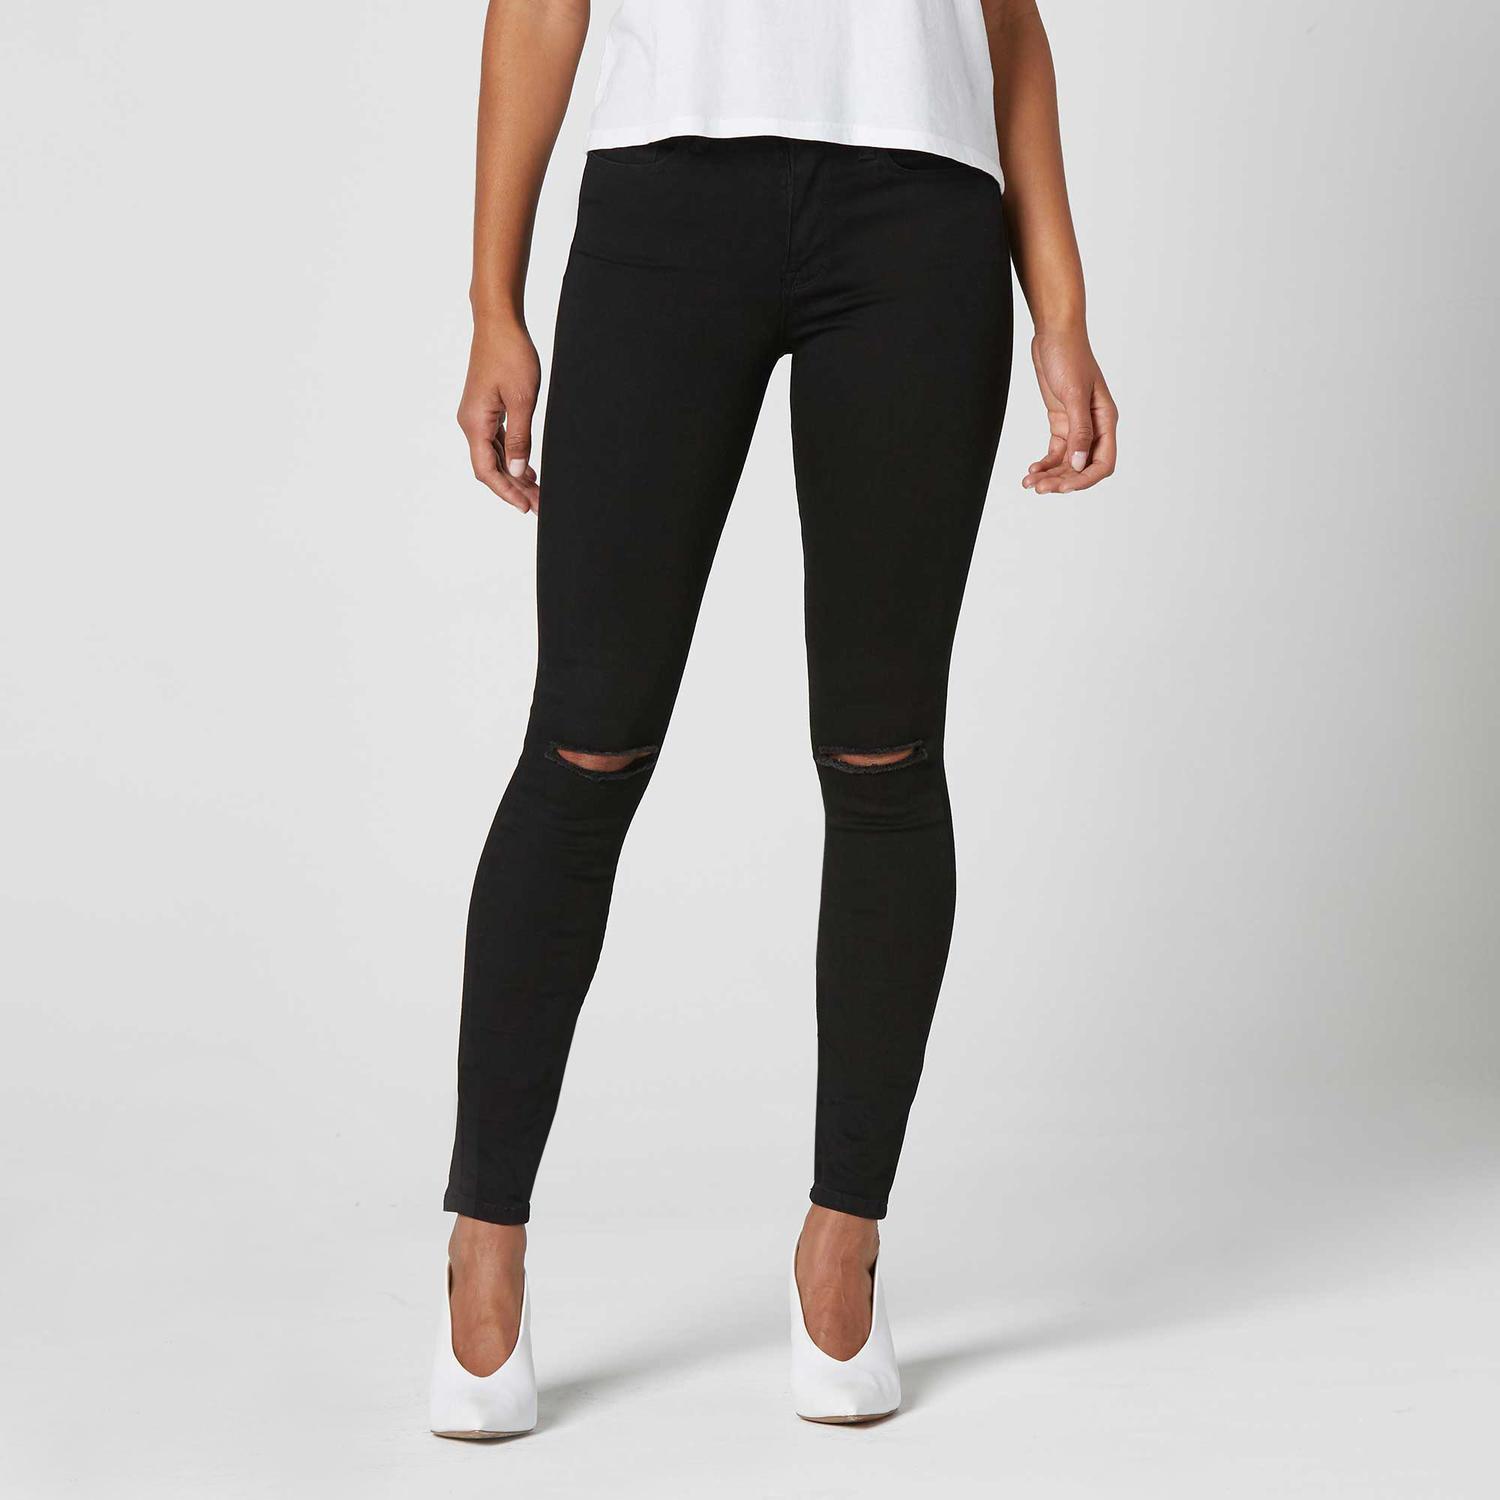 ec5b62c5f005 Womens Ripped High Waisted Skinny Jeans In Black Powerstretch $75 ...